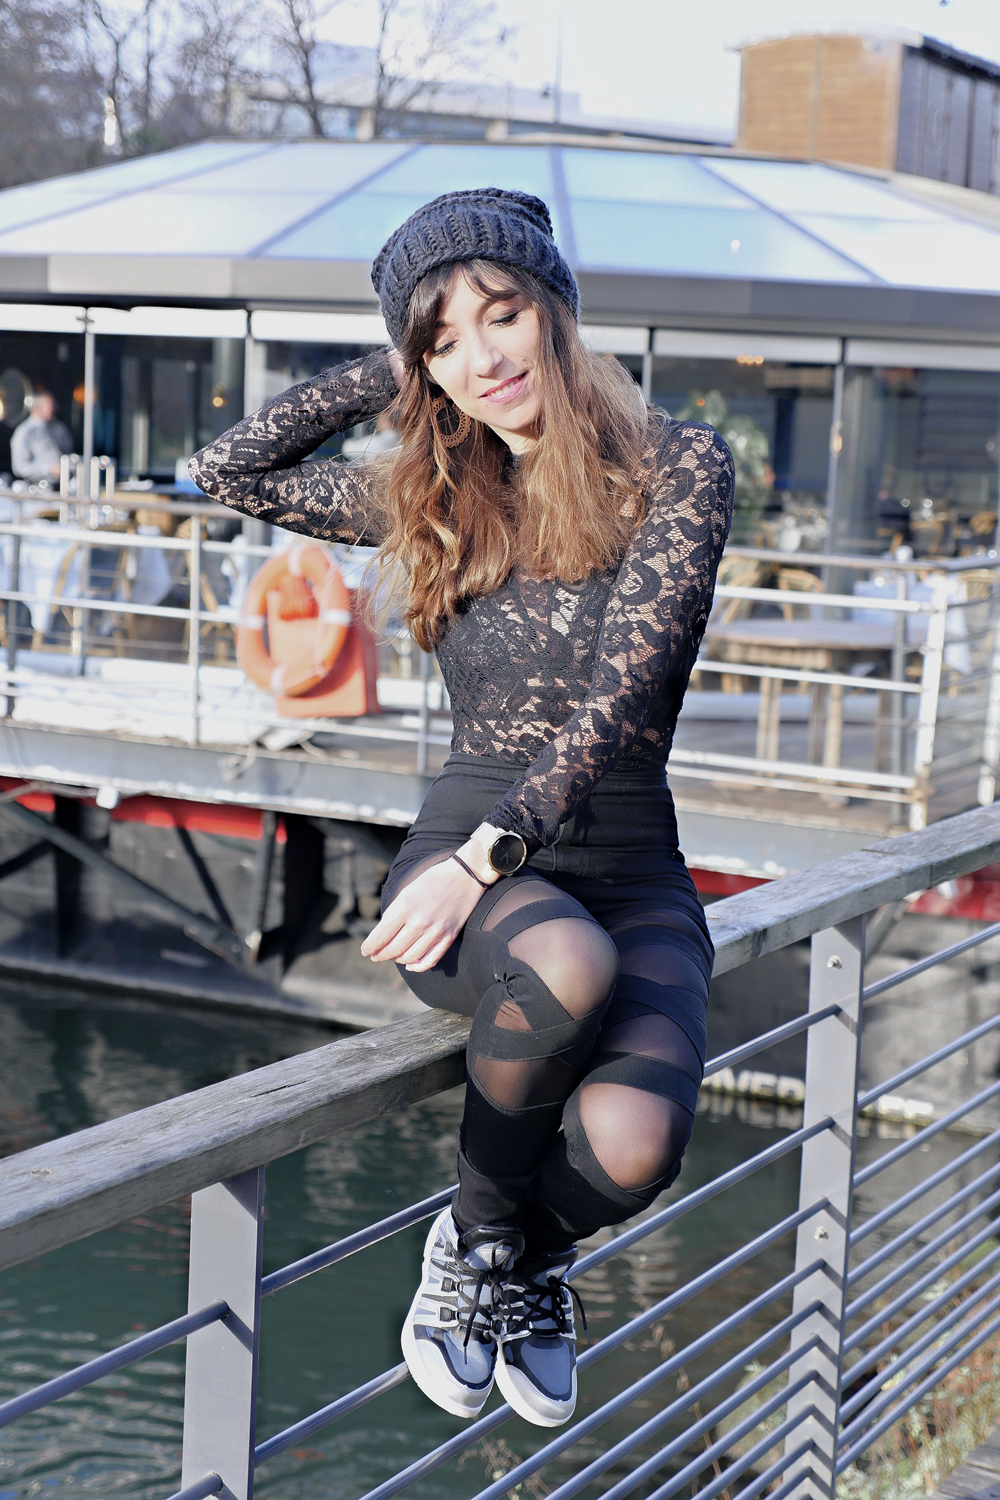 marieluvpink-blog-mode-rivers-cafe-issy-les-moulineaux-6